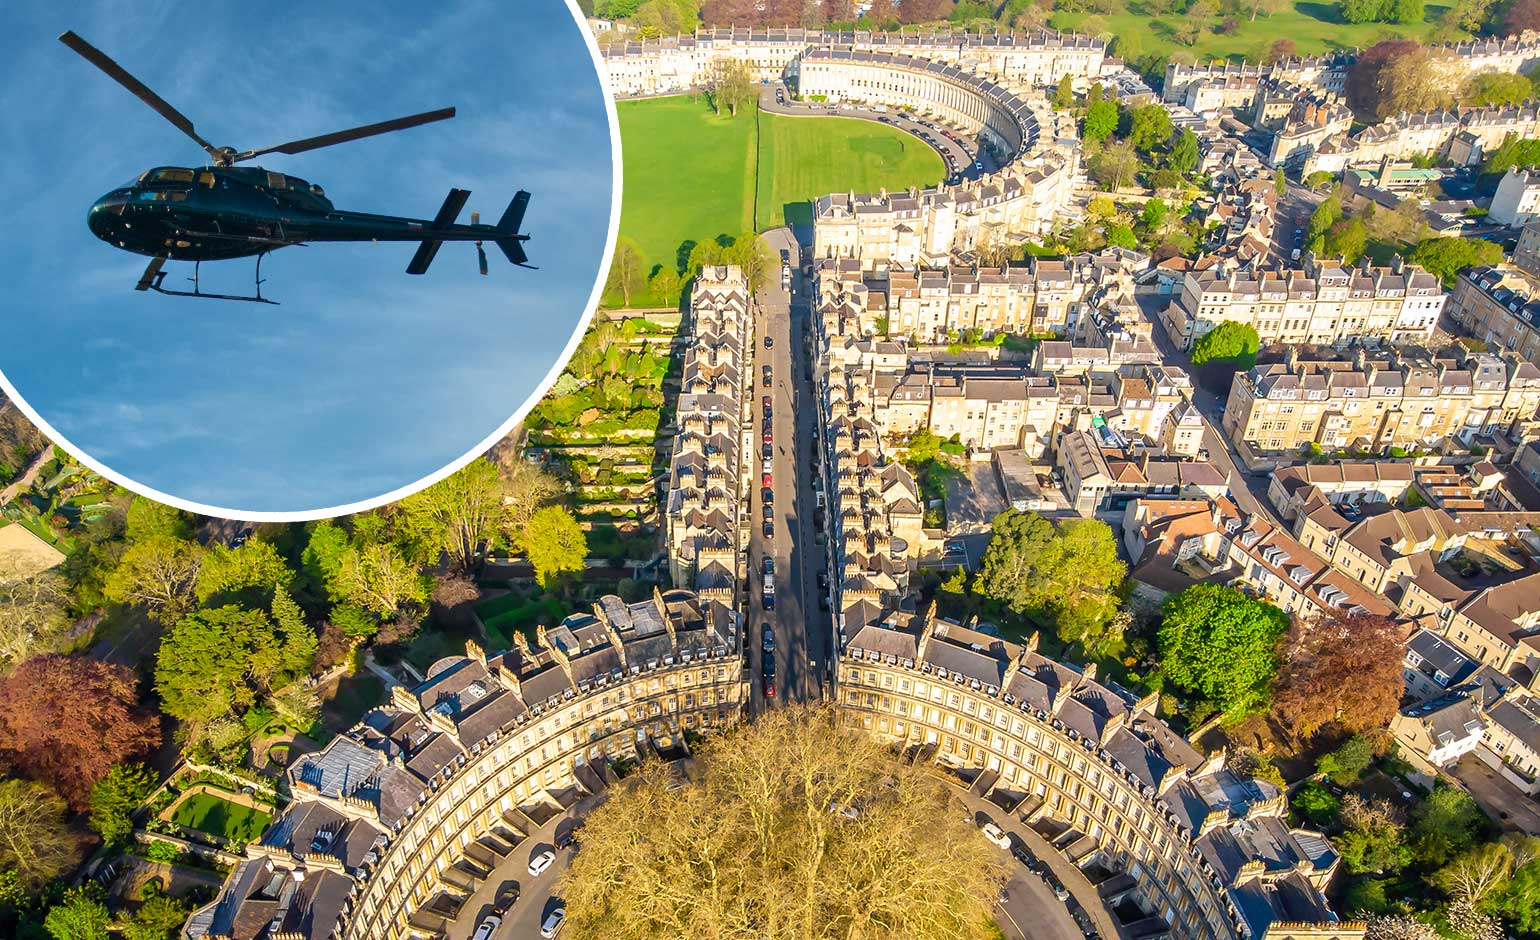 Bath MP launches petition in bid to stop sightseeing helicopter flights